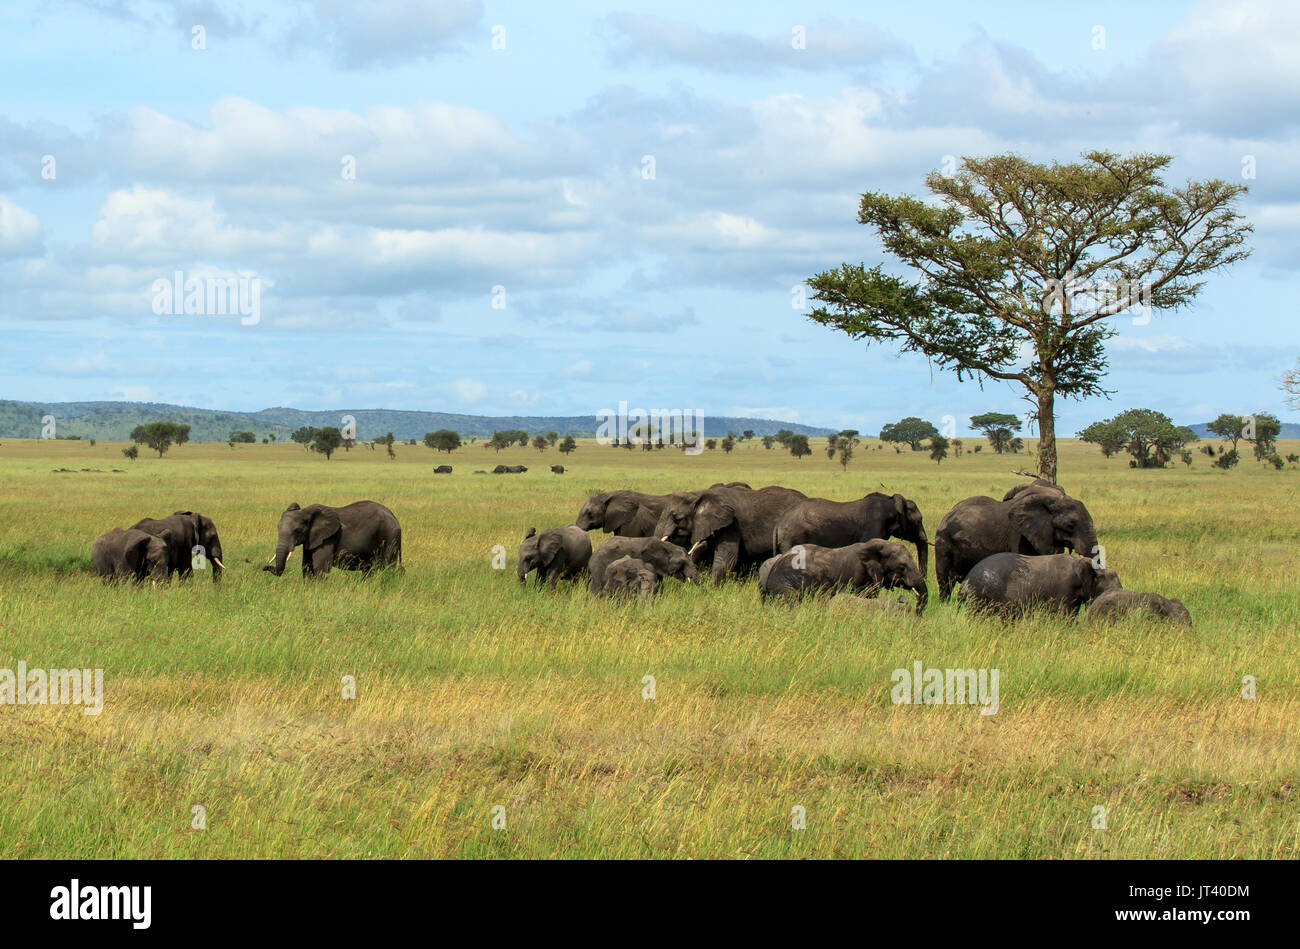 A herd of Elephants grazing in the grasslands of the Serengeti - Stock Image